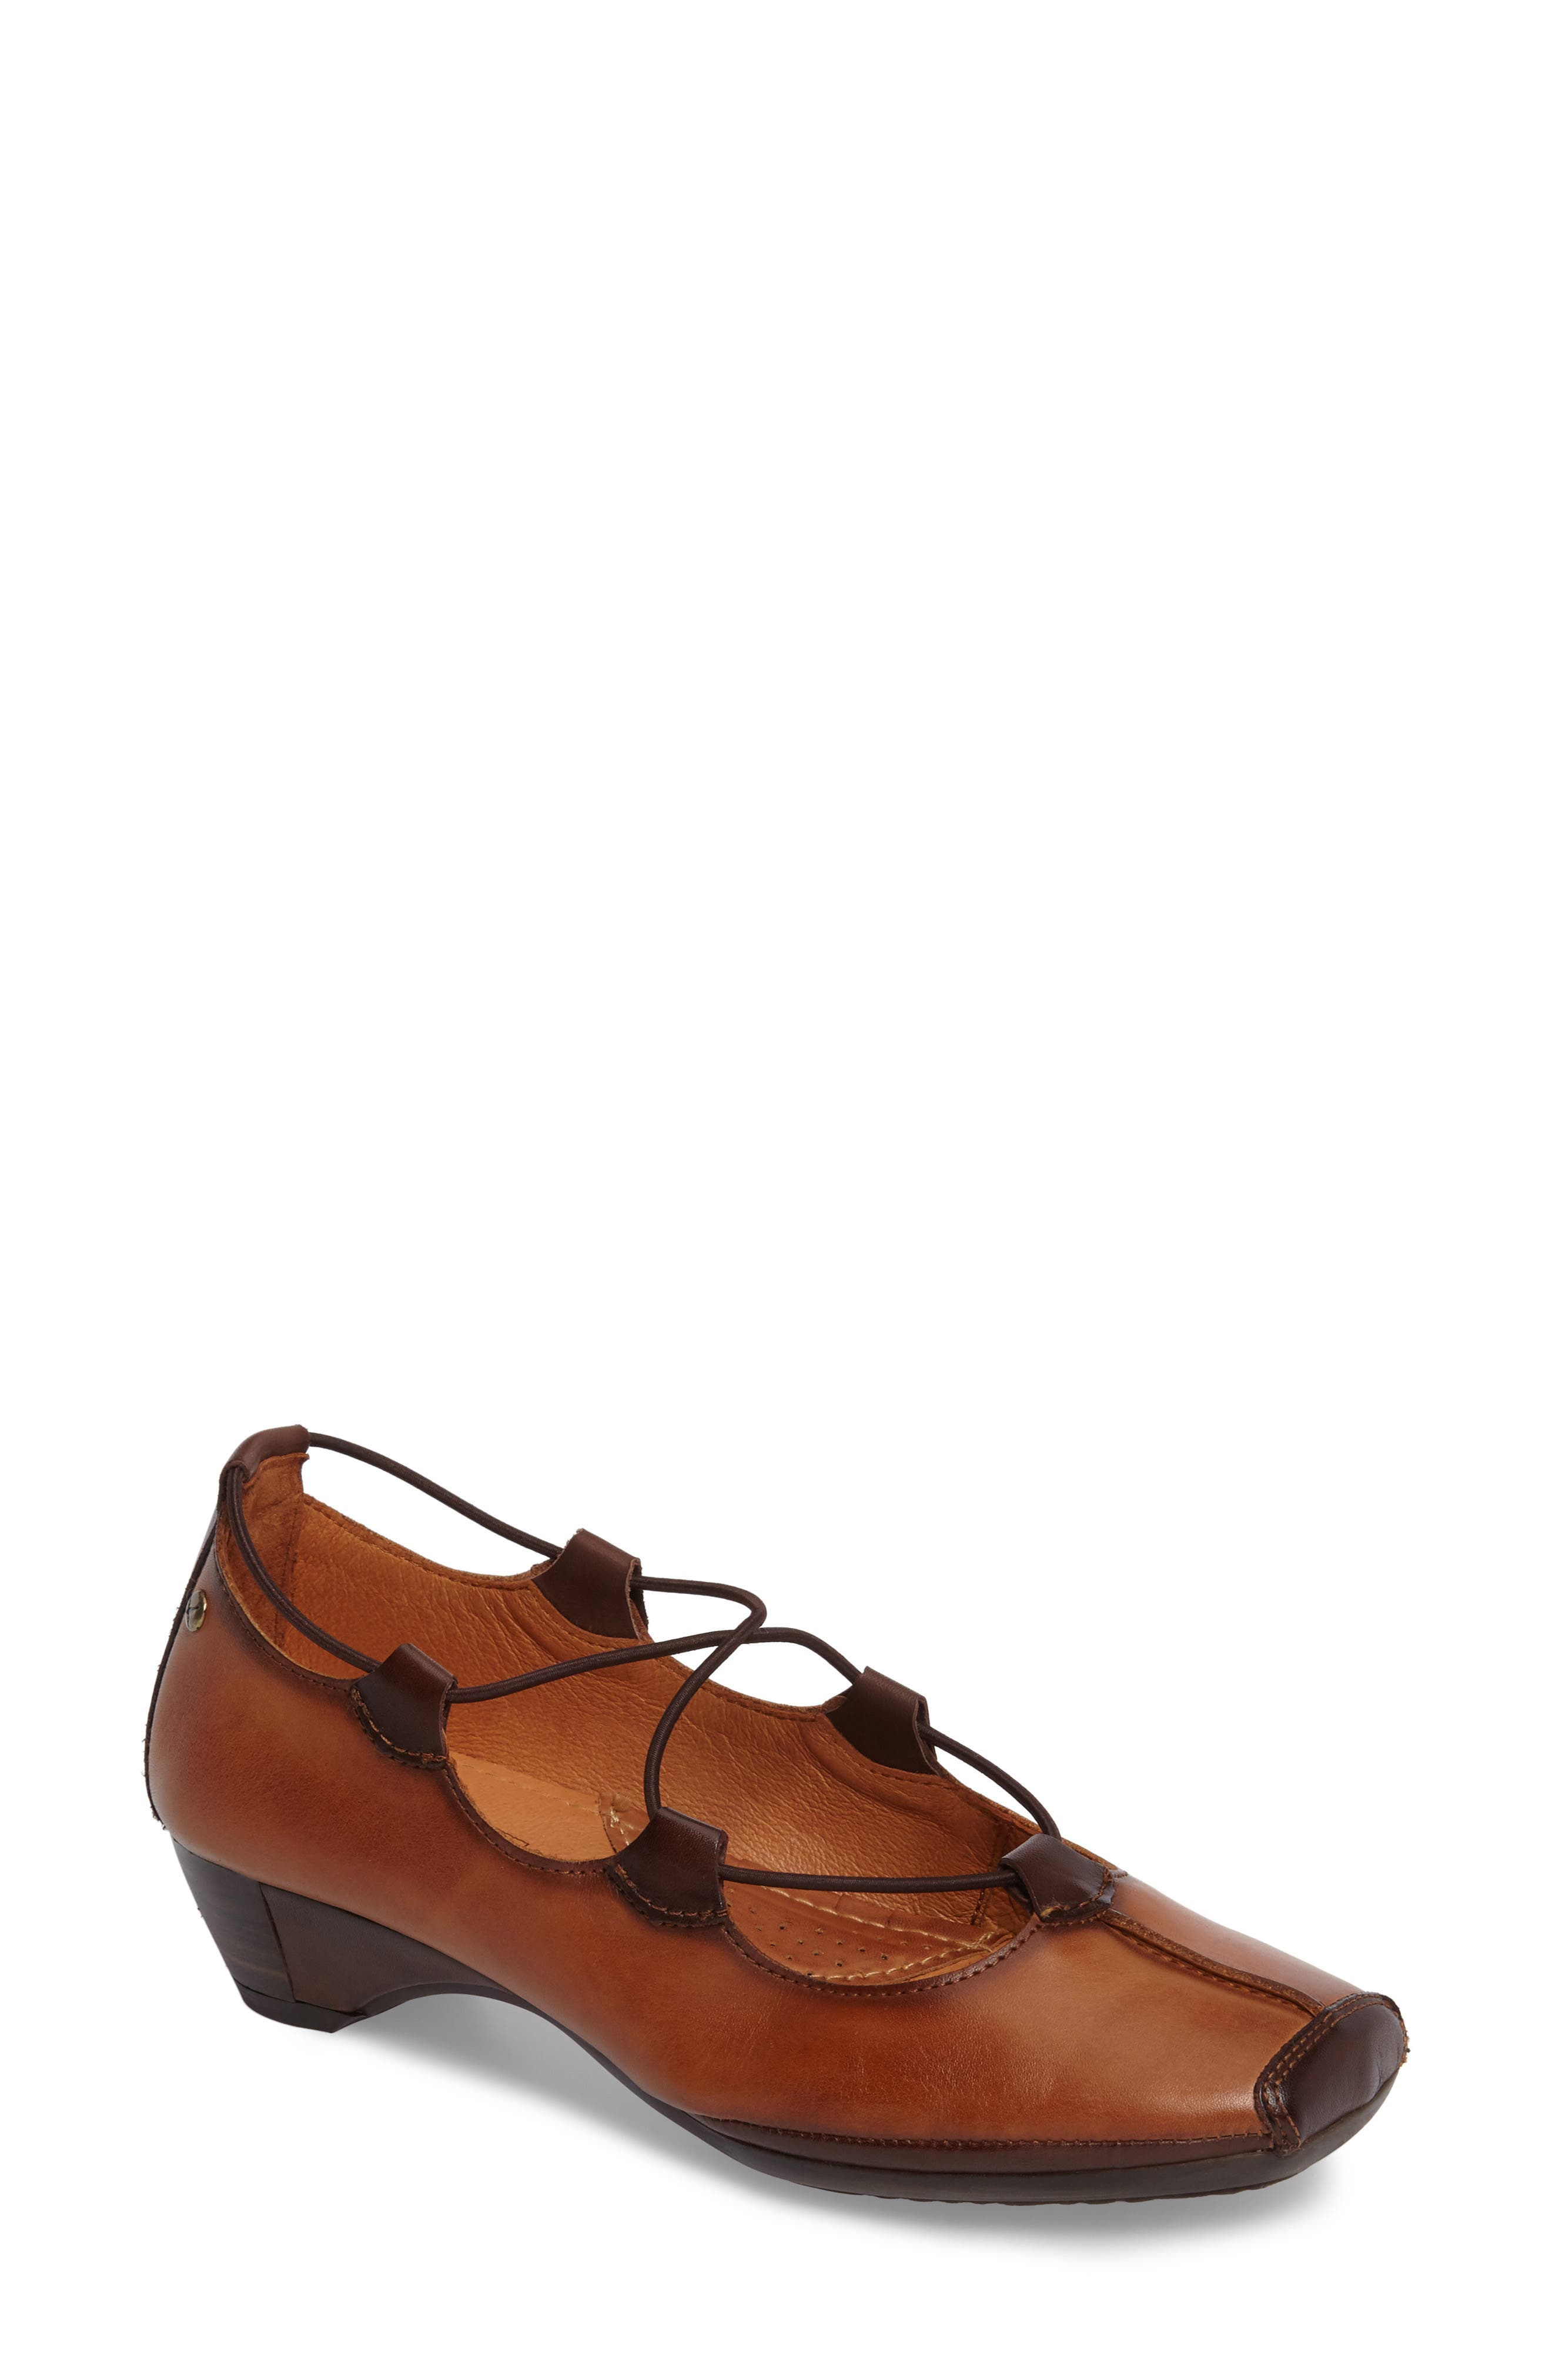 Pikolinos Gandia Lace-Up Pump, Brown